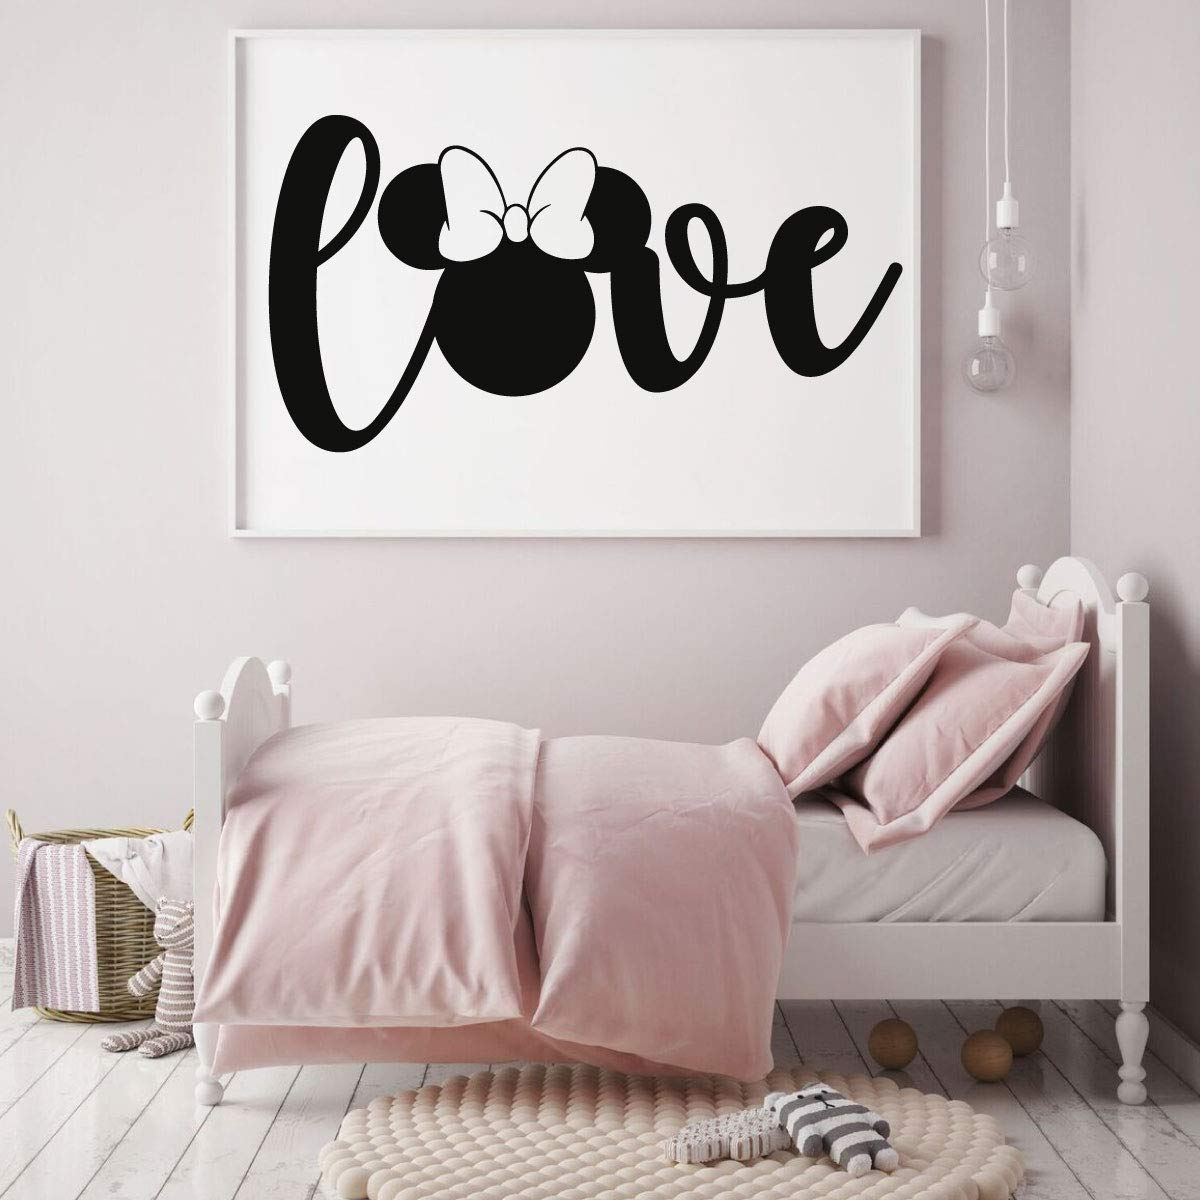 Minnie Mouse Wall Decal - Disney Wall Decal - Vinyl Decor for Bedroom or Playroom – Vinyl Lettering 'Love'